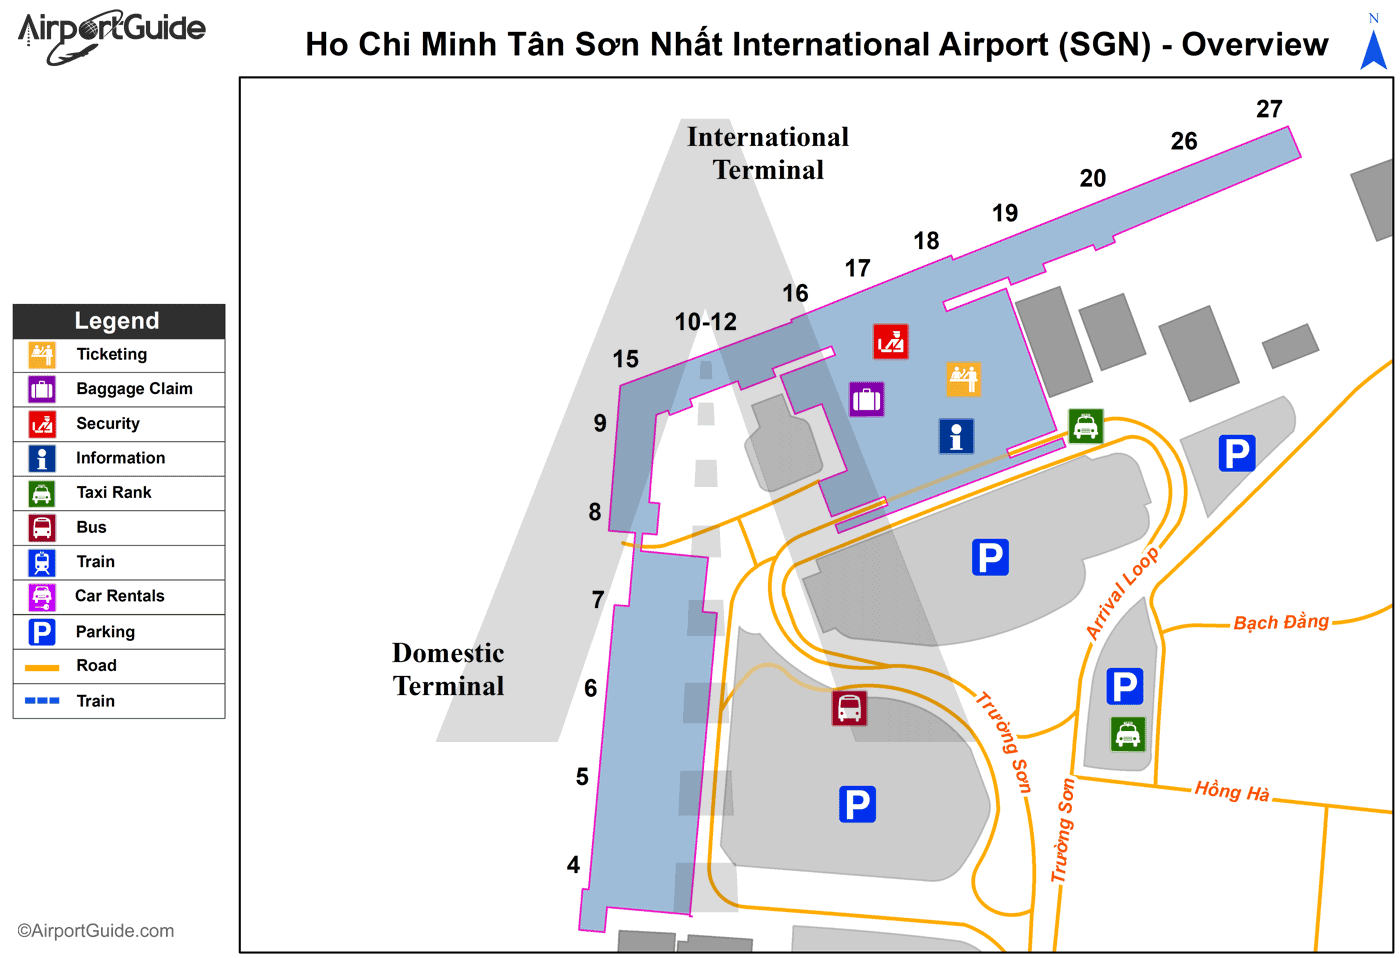 Ho Chi Minh City - Tan Son Nhat International (SGN) Airport Terminal Map - Overview